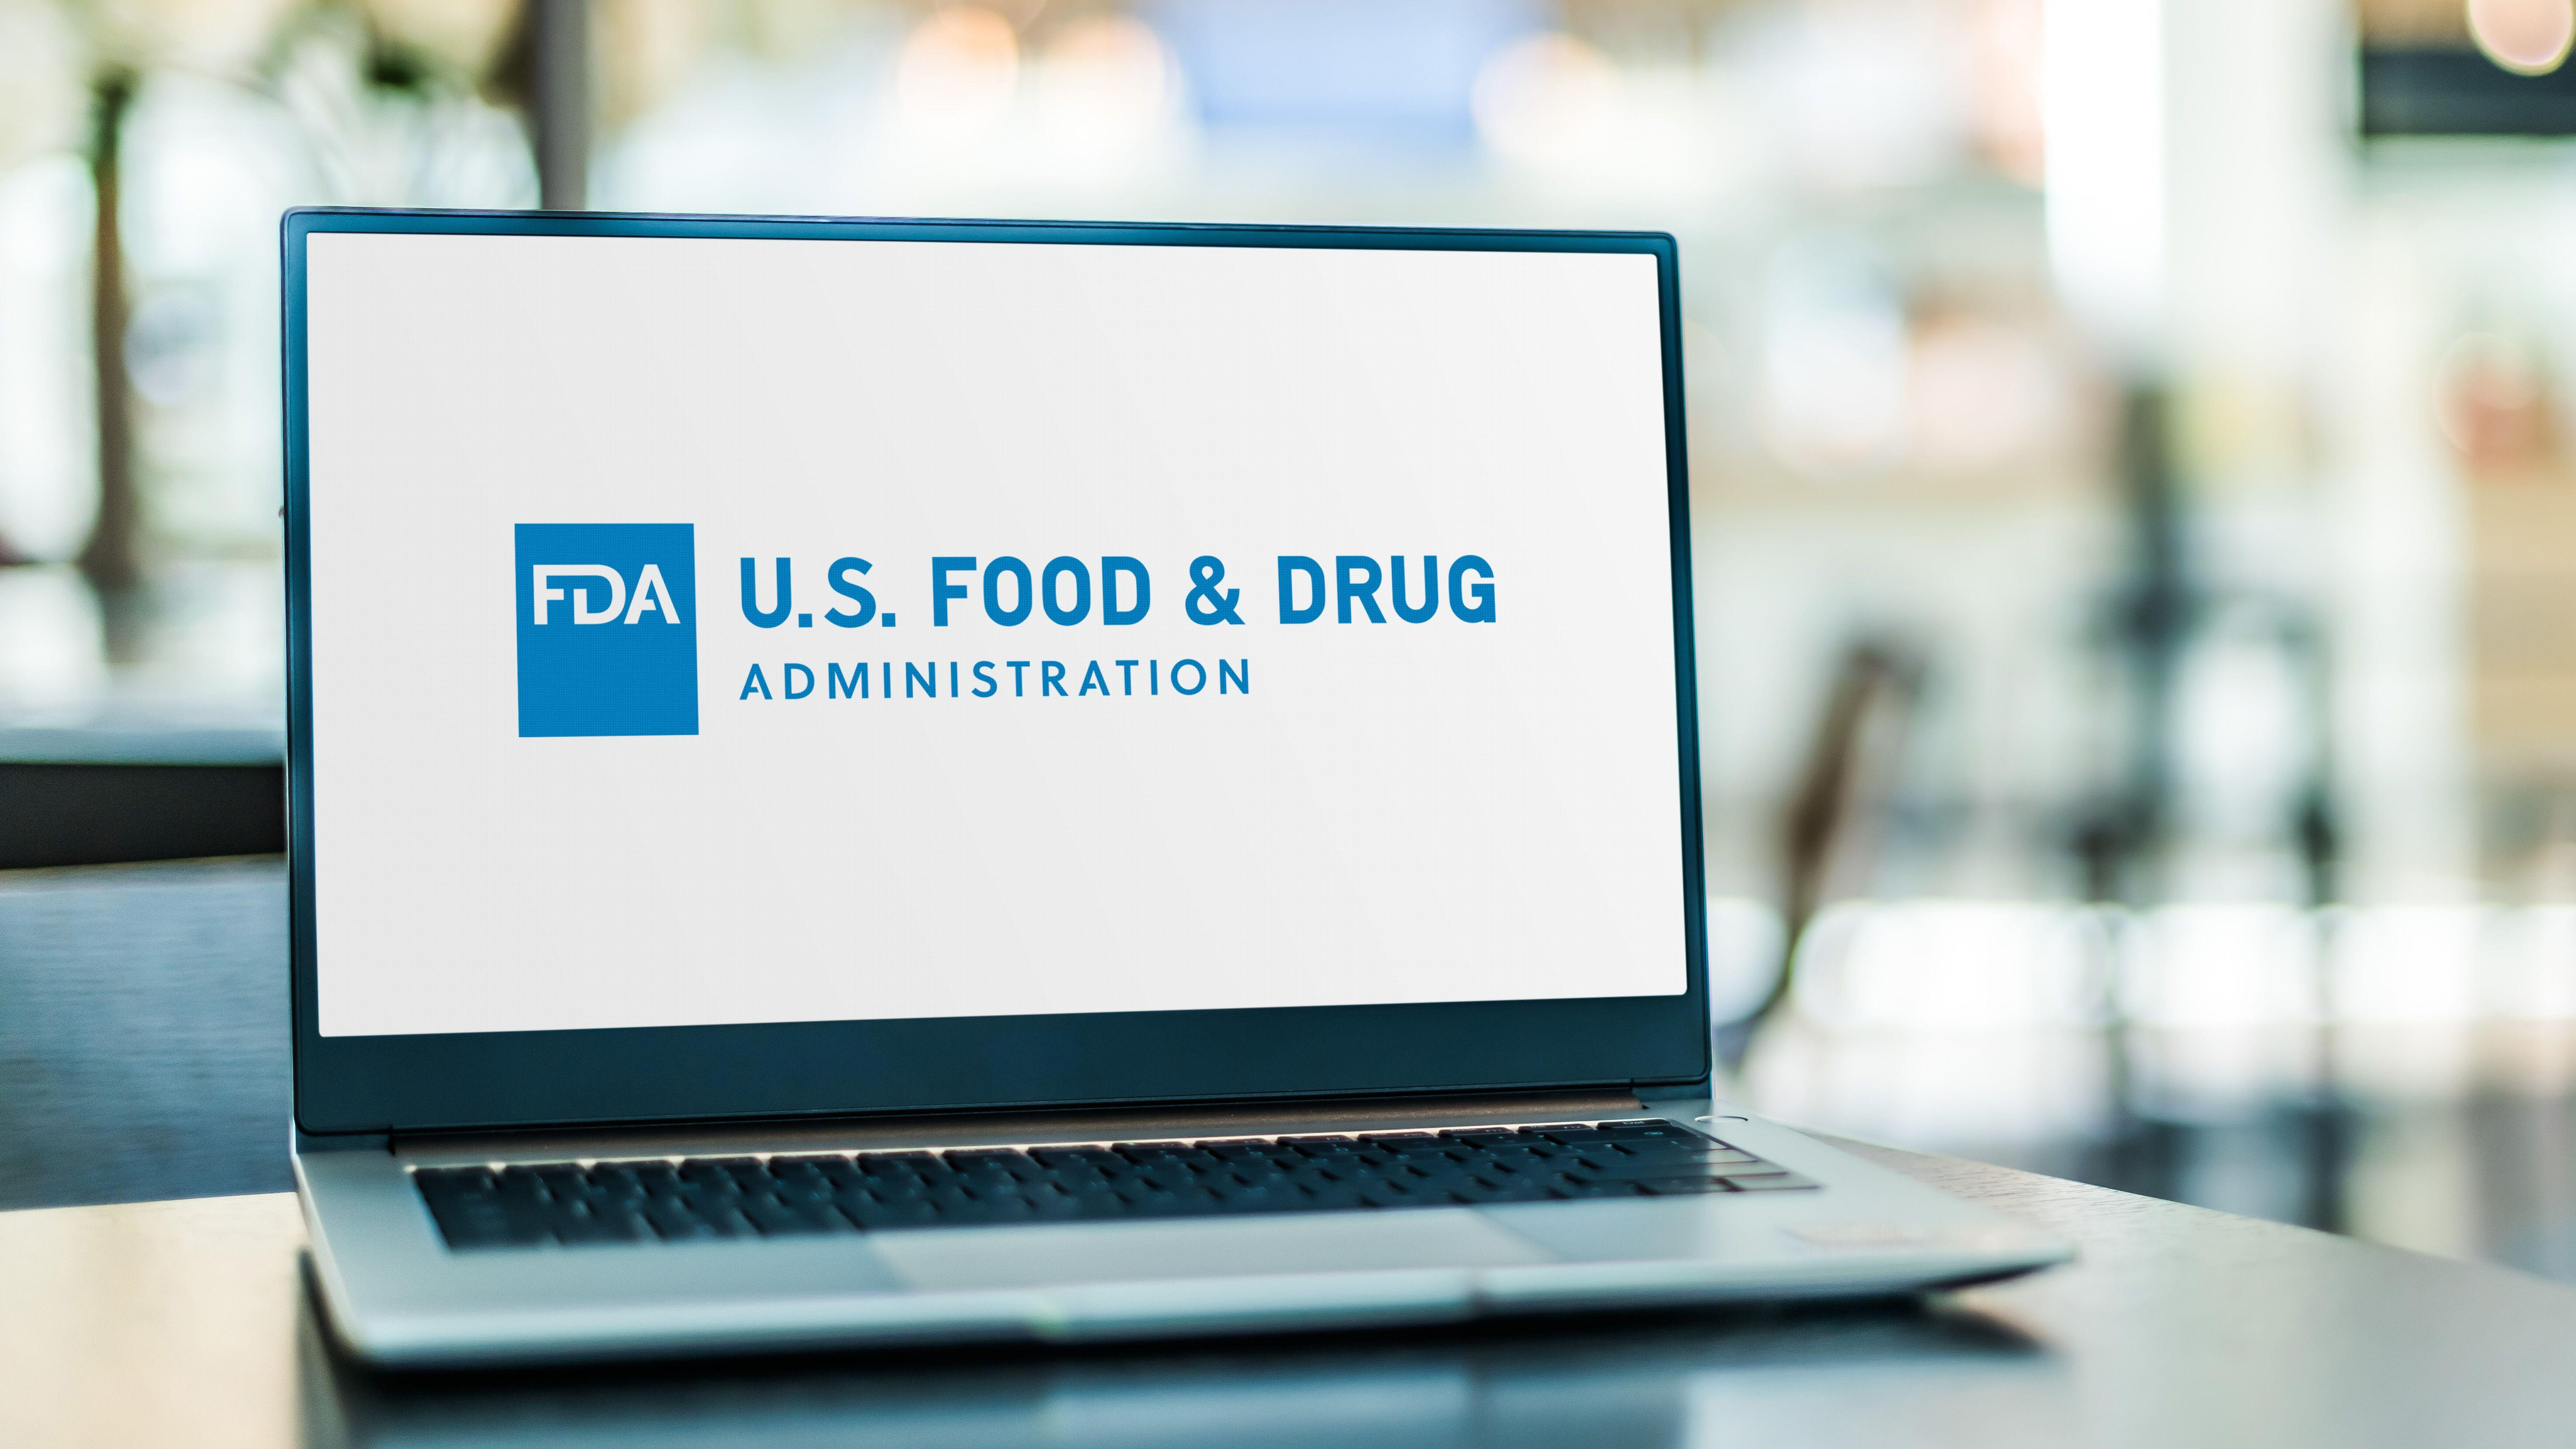 New FDA Webform Makes It Easier For Device Makers To Report Shortages